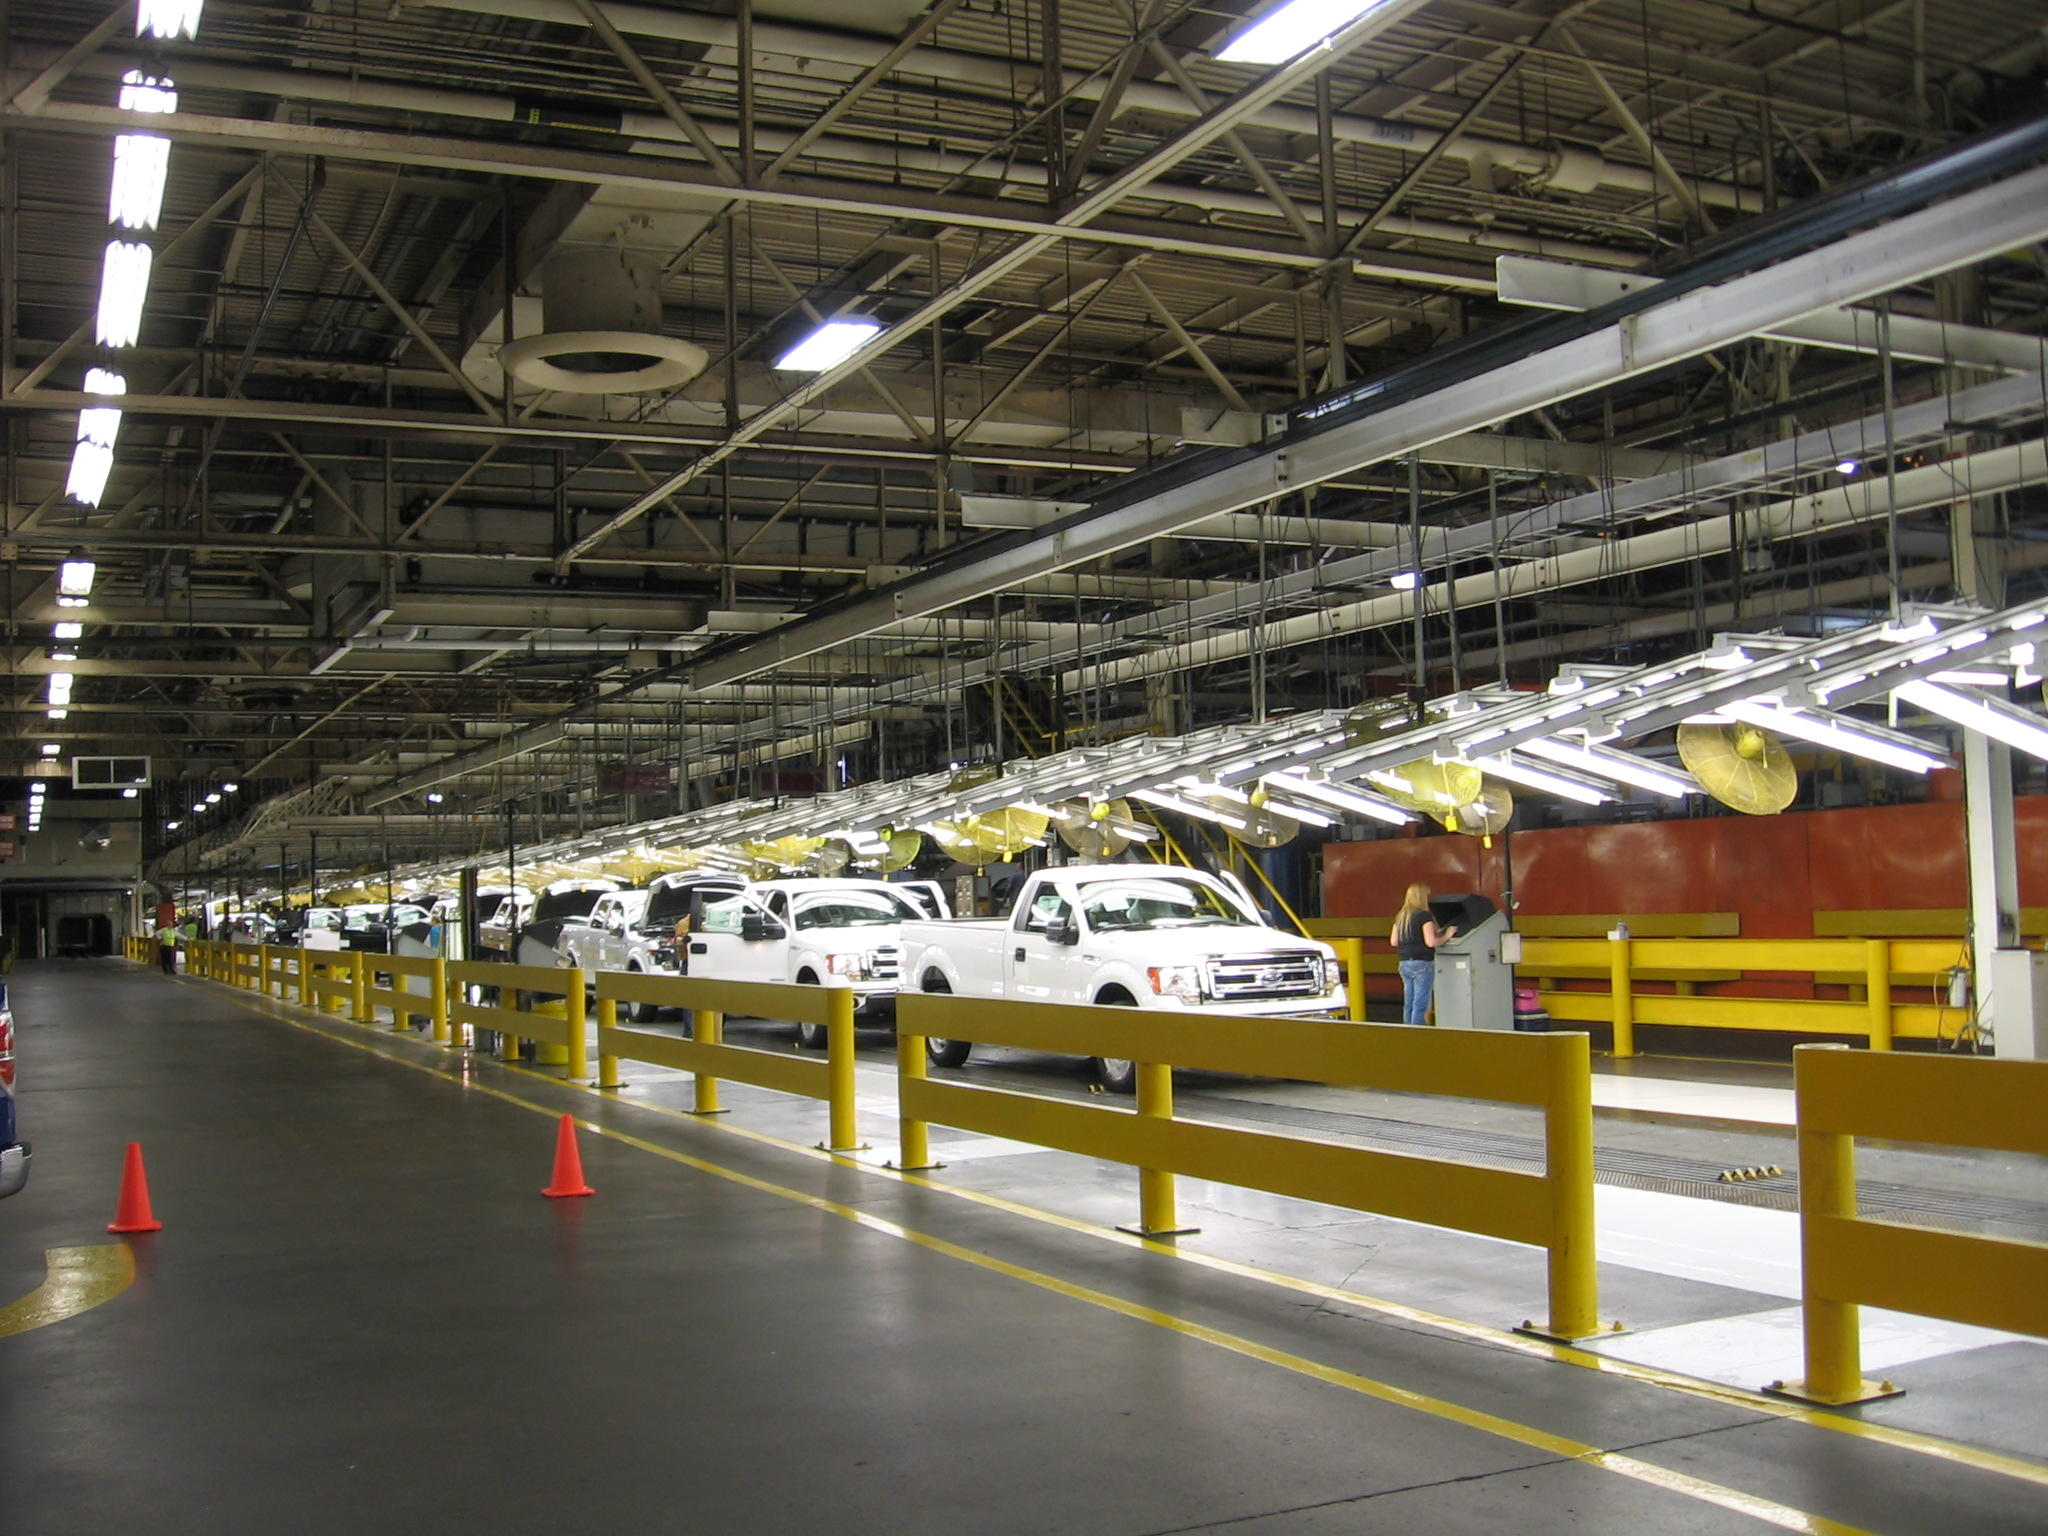 Third shift workers start at claycomo ford plant